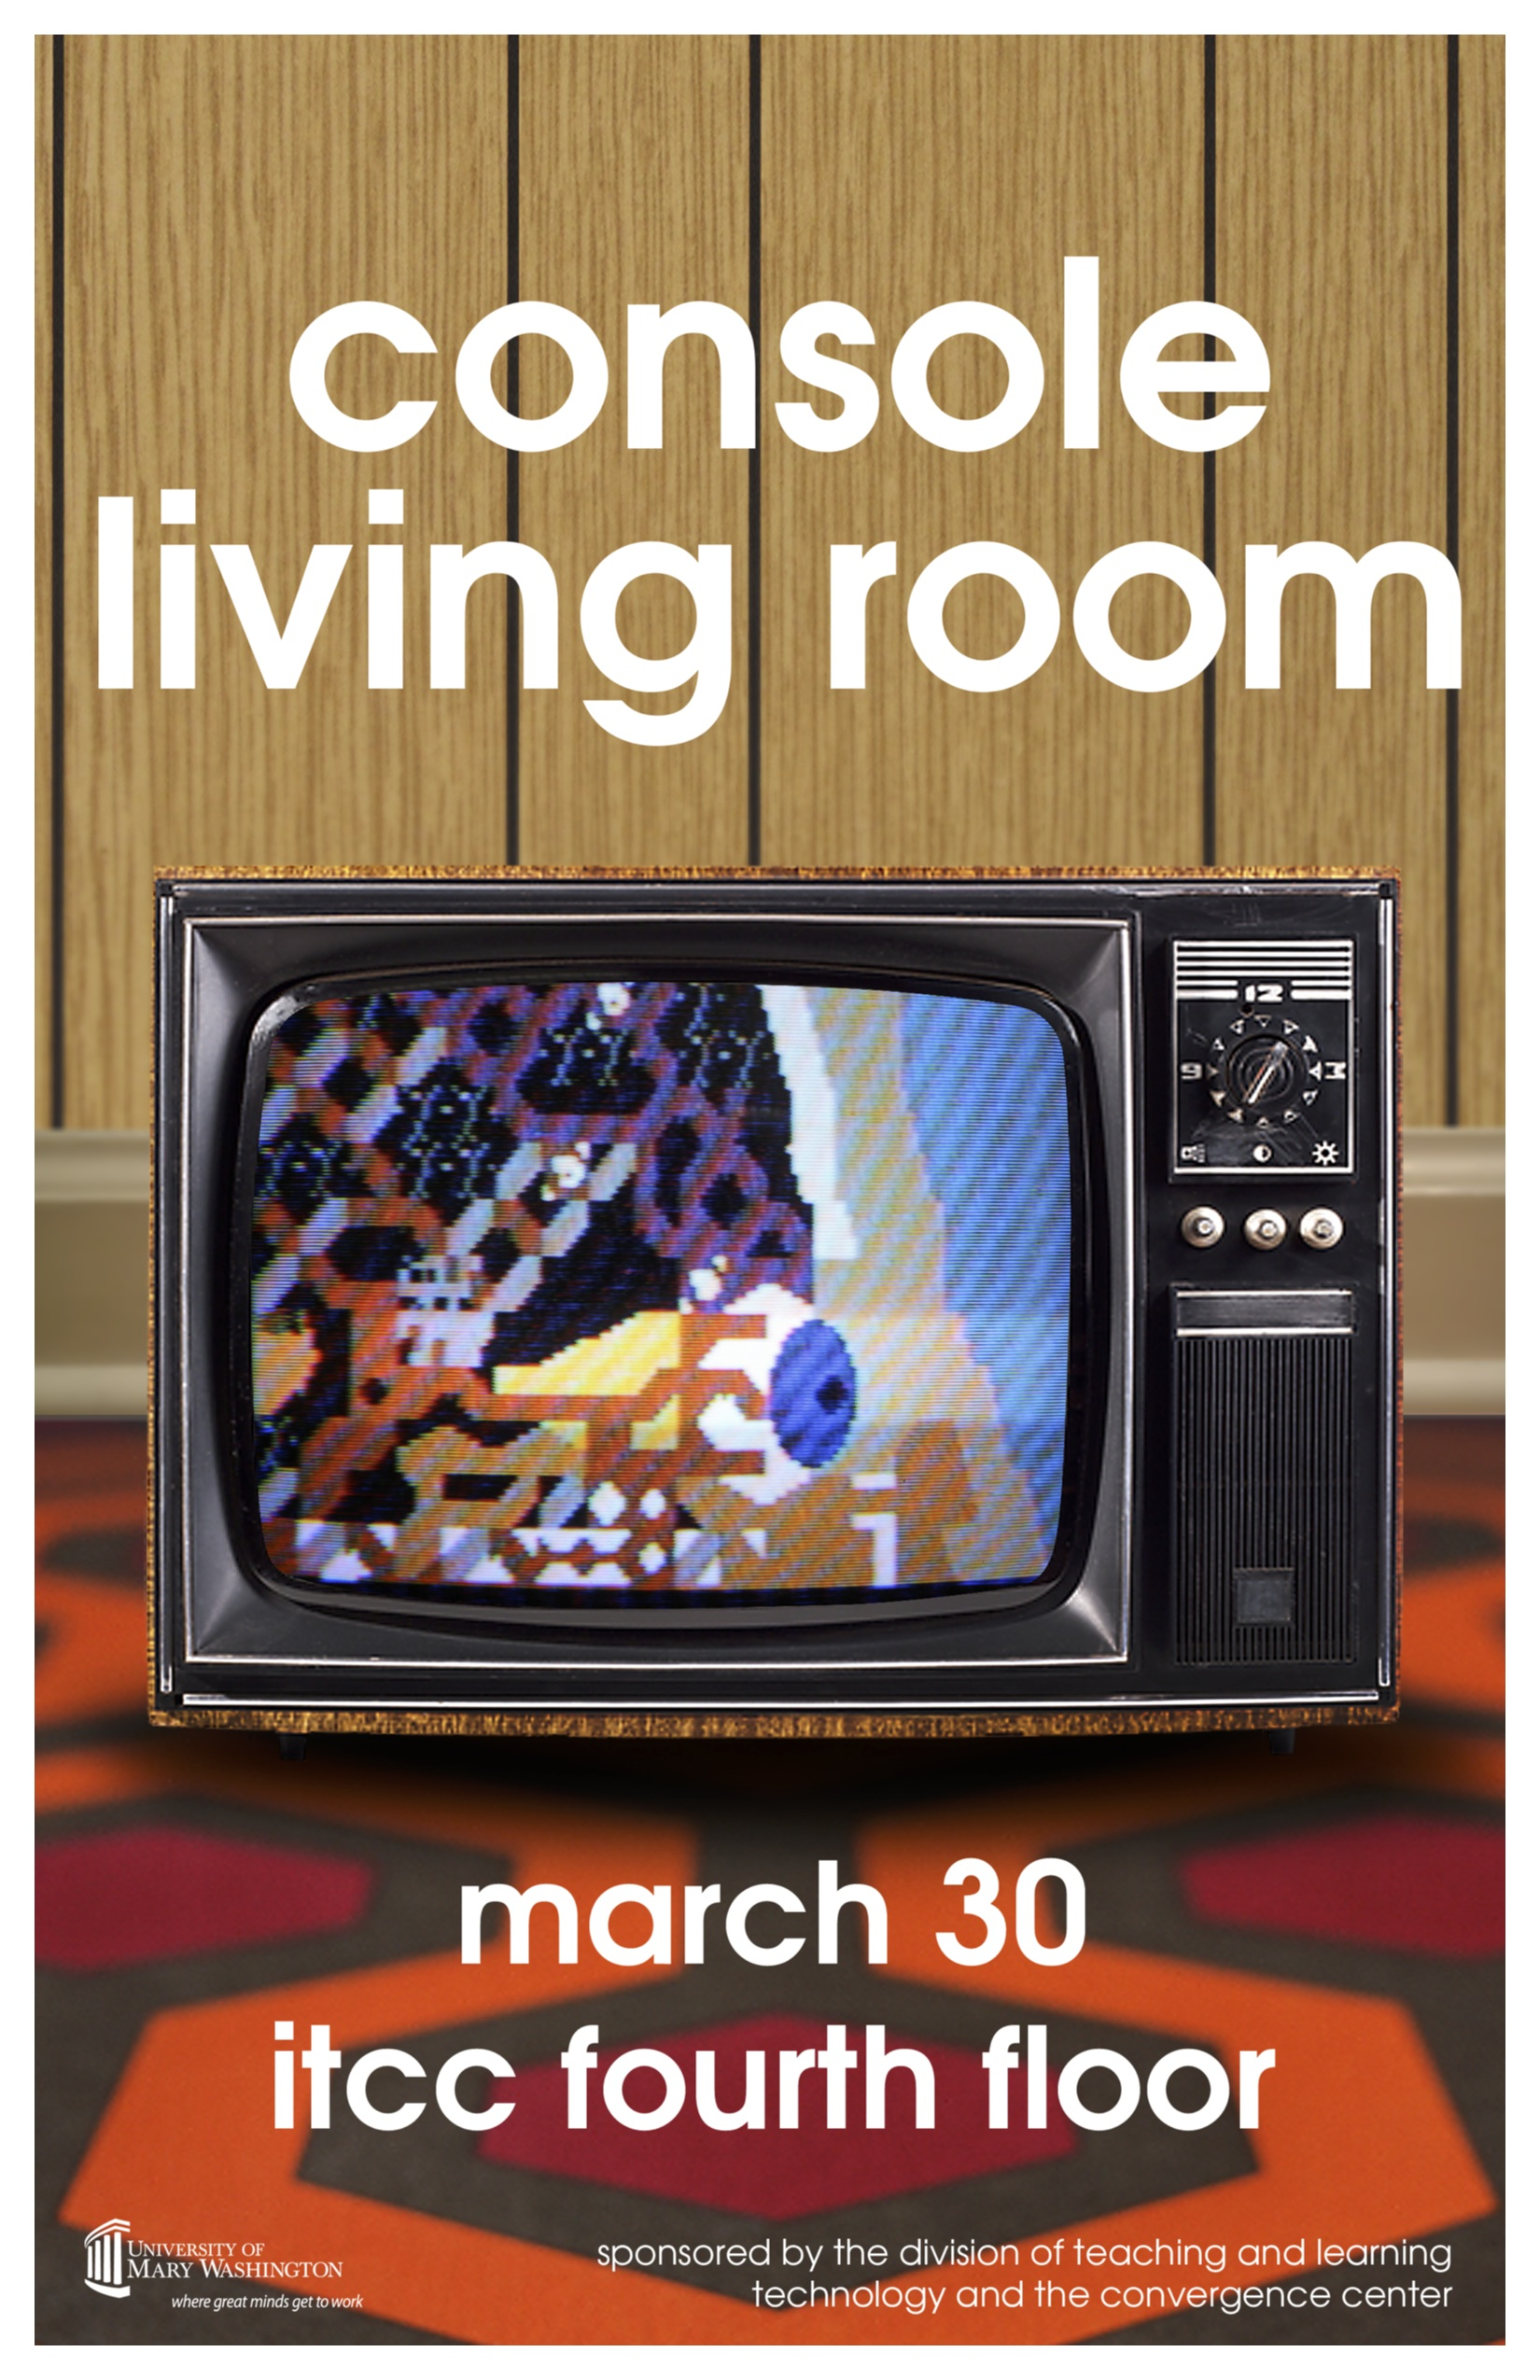 Umwconsole Poster Microsurgeon The Console Living Room